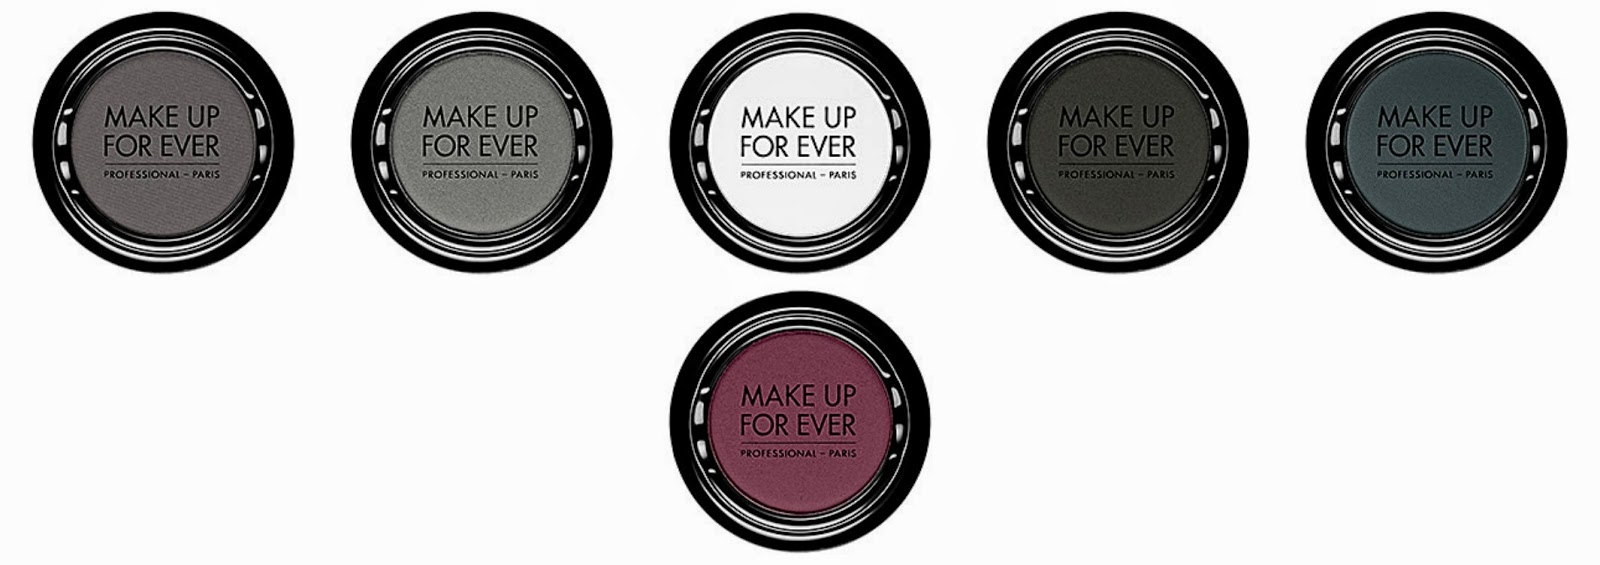 Make Up For Ever Artist Shadow Top from left: M106 Slate; M110 Cement; M126 Chalk; M100 Black; M-240 Prussian Blue  Bottom: M228 Eggplant